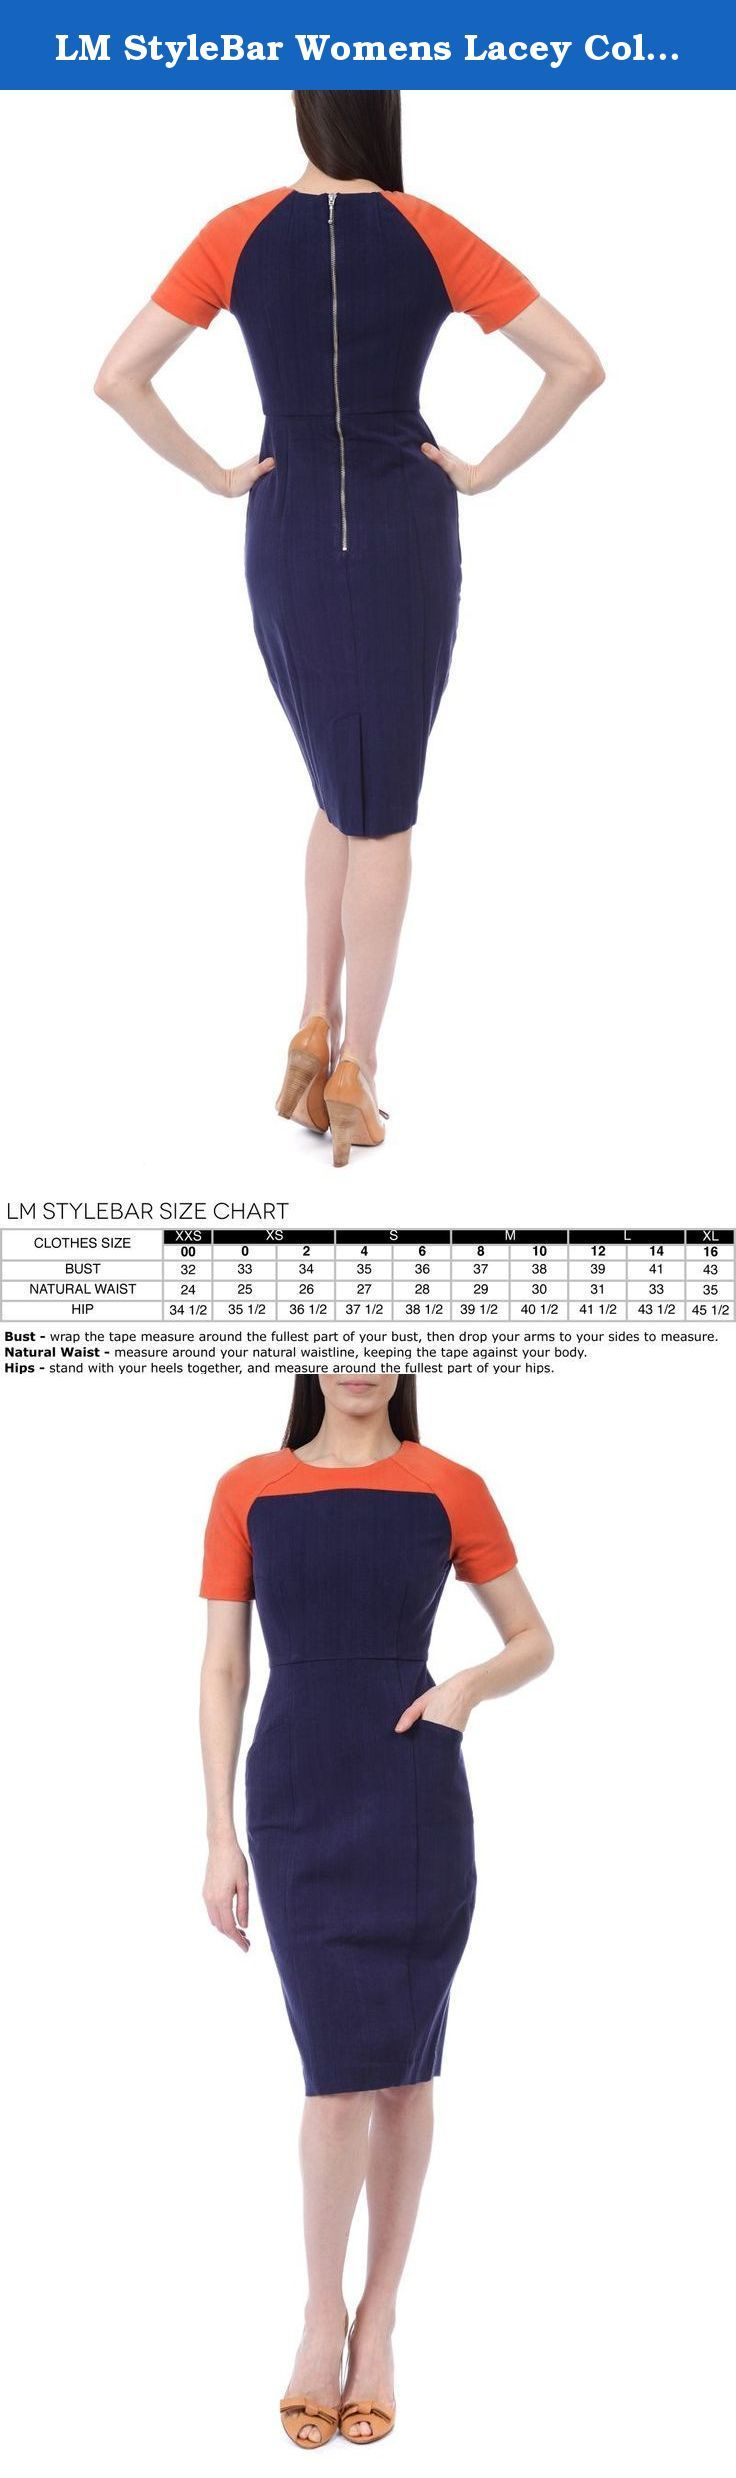 """LM StyleBar Womens Lacey Color Blocked Dress with Stretch 12 Navy & Orange. You won't want to take this dress off! Made of a Tencel (an all natural fiber) 4 - way stretch fabric, this fabric has supreme breathability and comfort. Did we mention with fabric is naturally wrinkle resistant? Meant to hit just below the knee to elevate and elongate your look. Overall length for size 6 is 42"""". Contrast color block yoke and raglan short sleeve. Dry clean. Imported."""